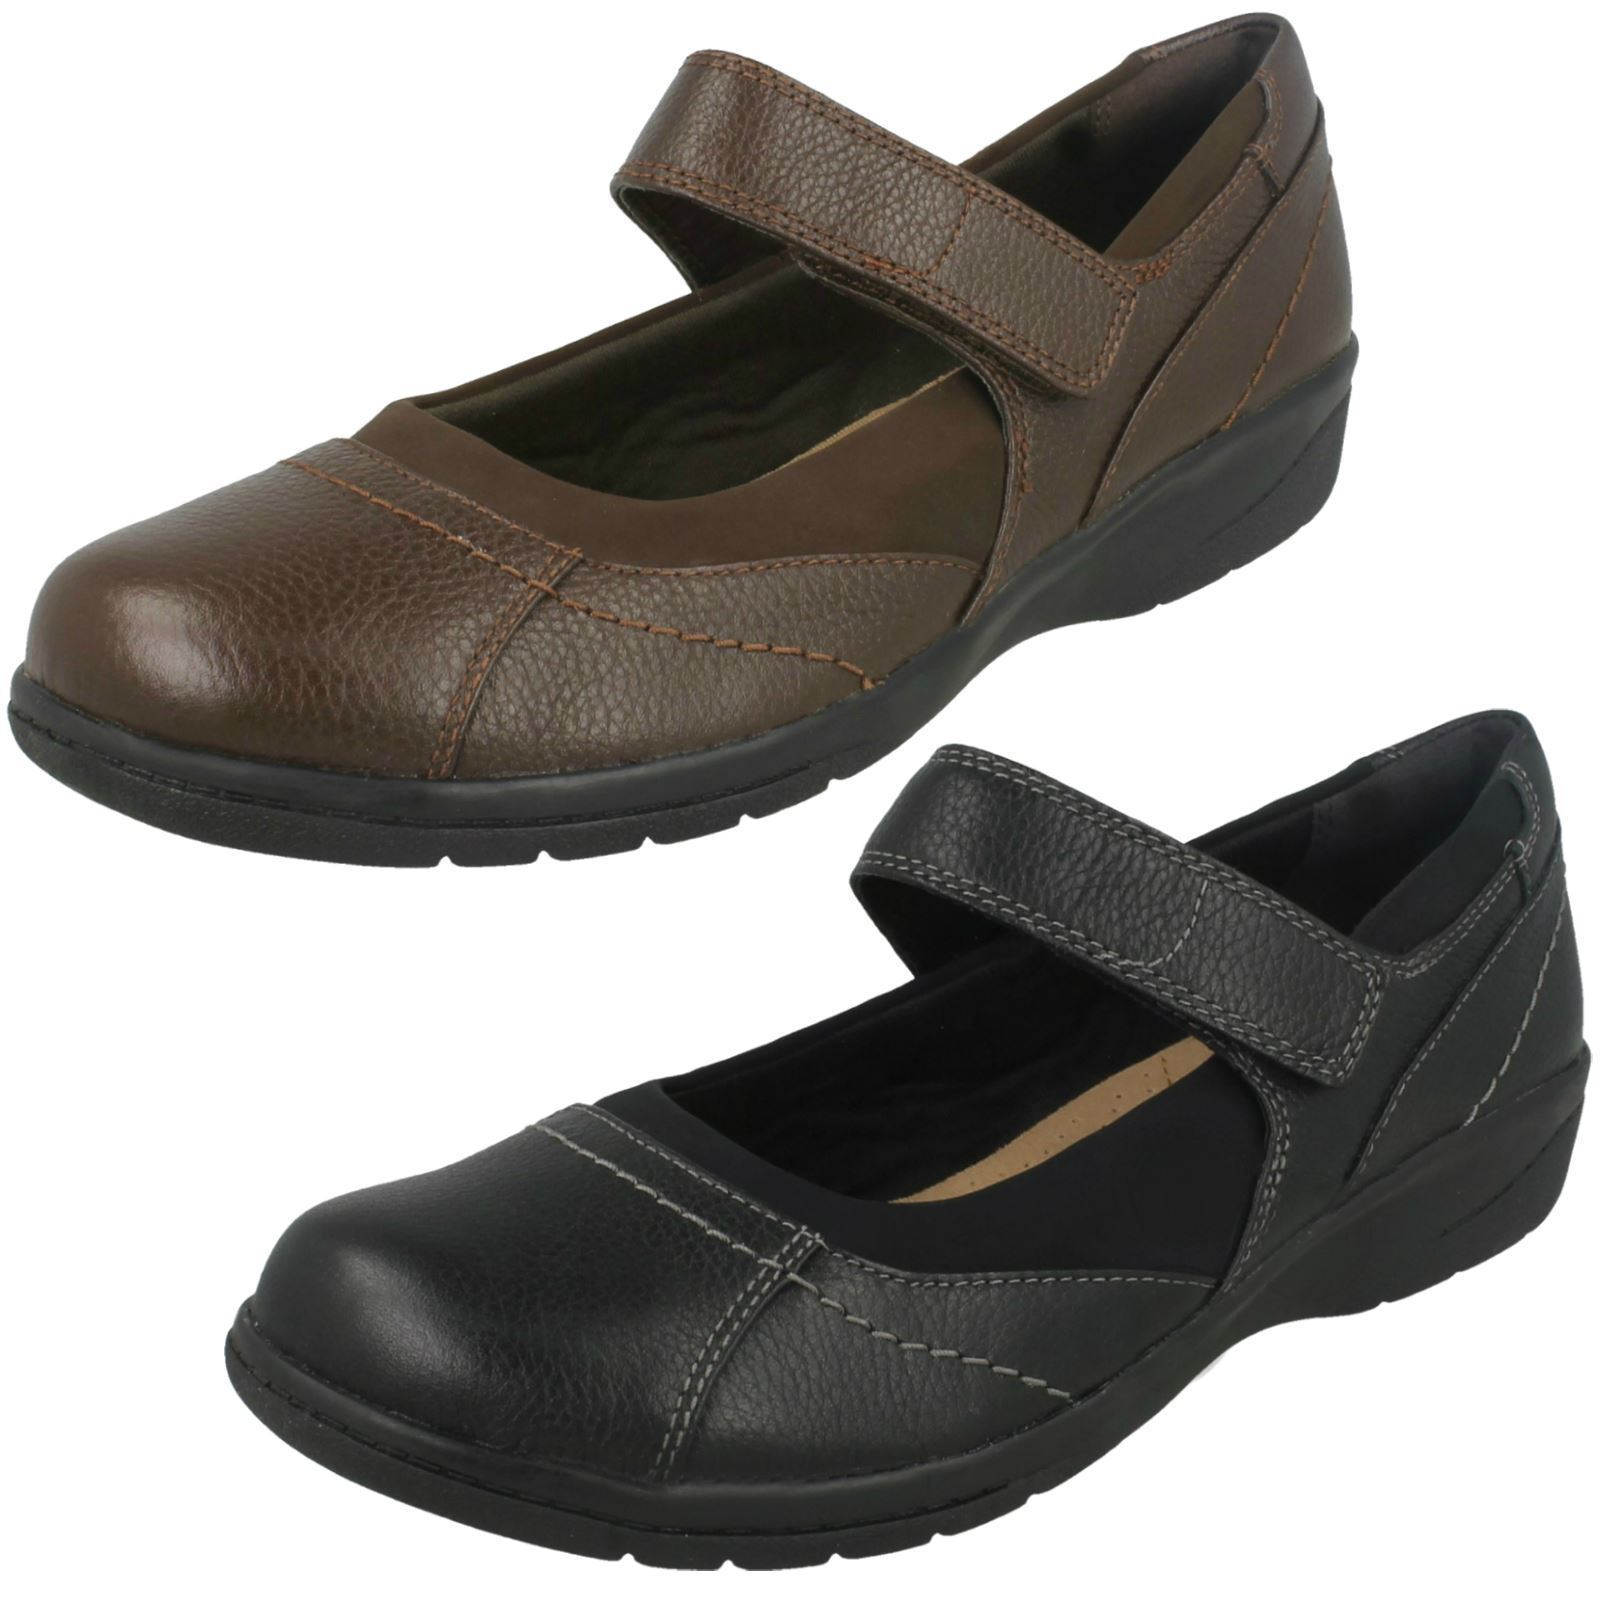 Ladies Clarks Black Wide Fit Mary Jane Leather shoes Cheyn Web